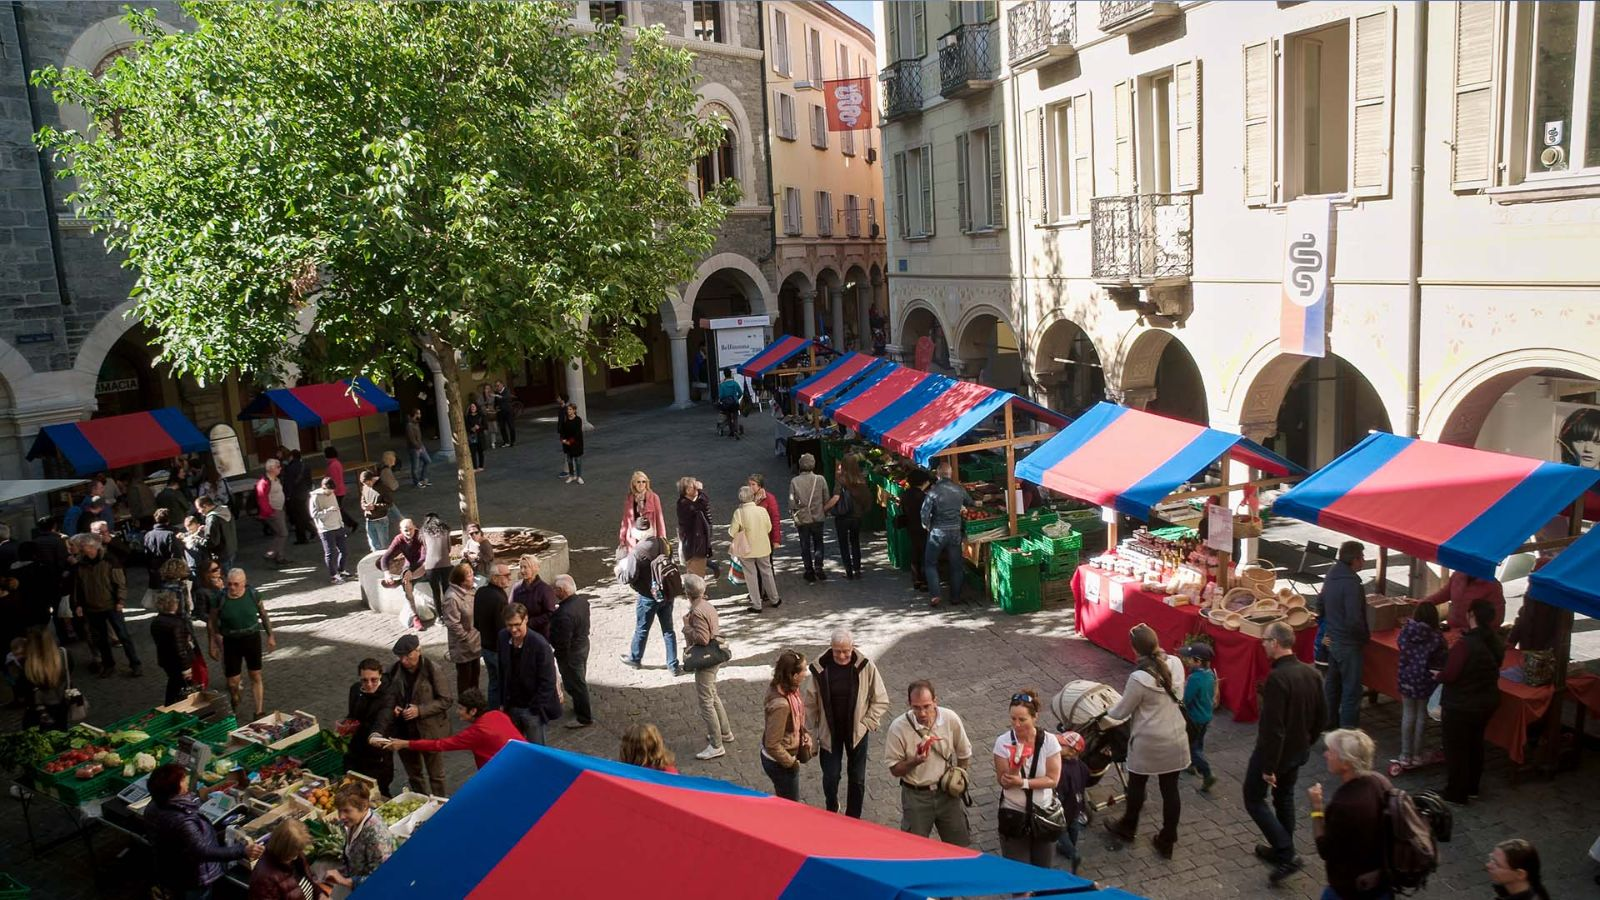 Piazza Nosetto, der traditionelle Samstagsmarkt